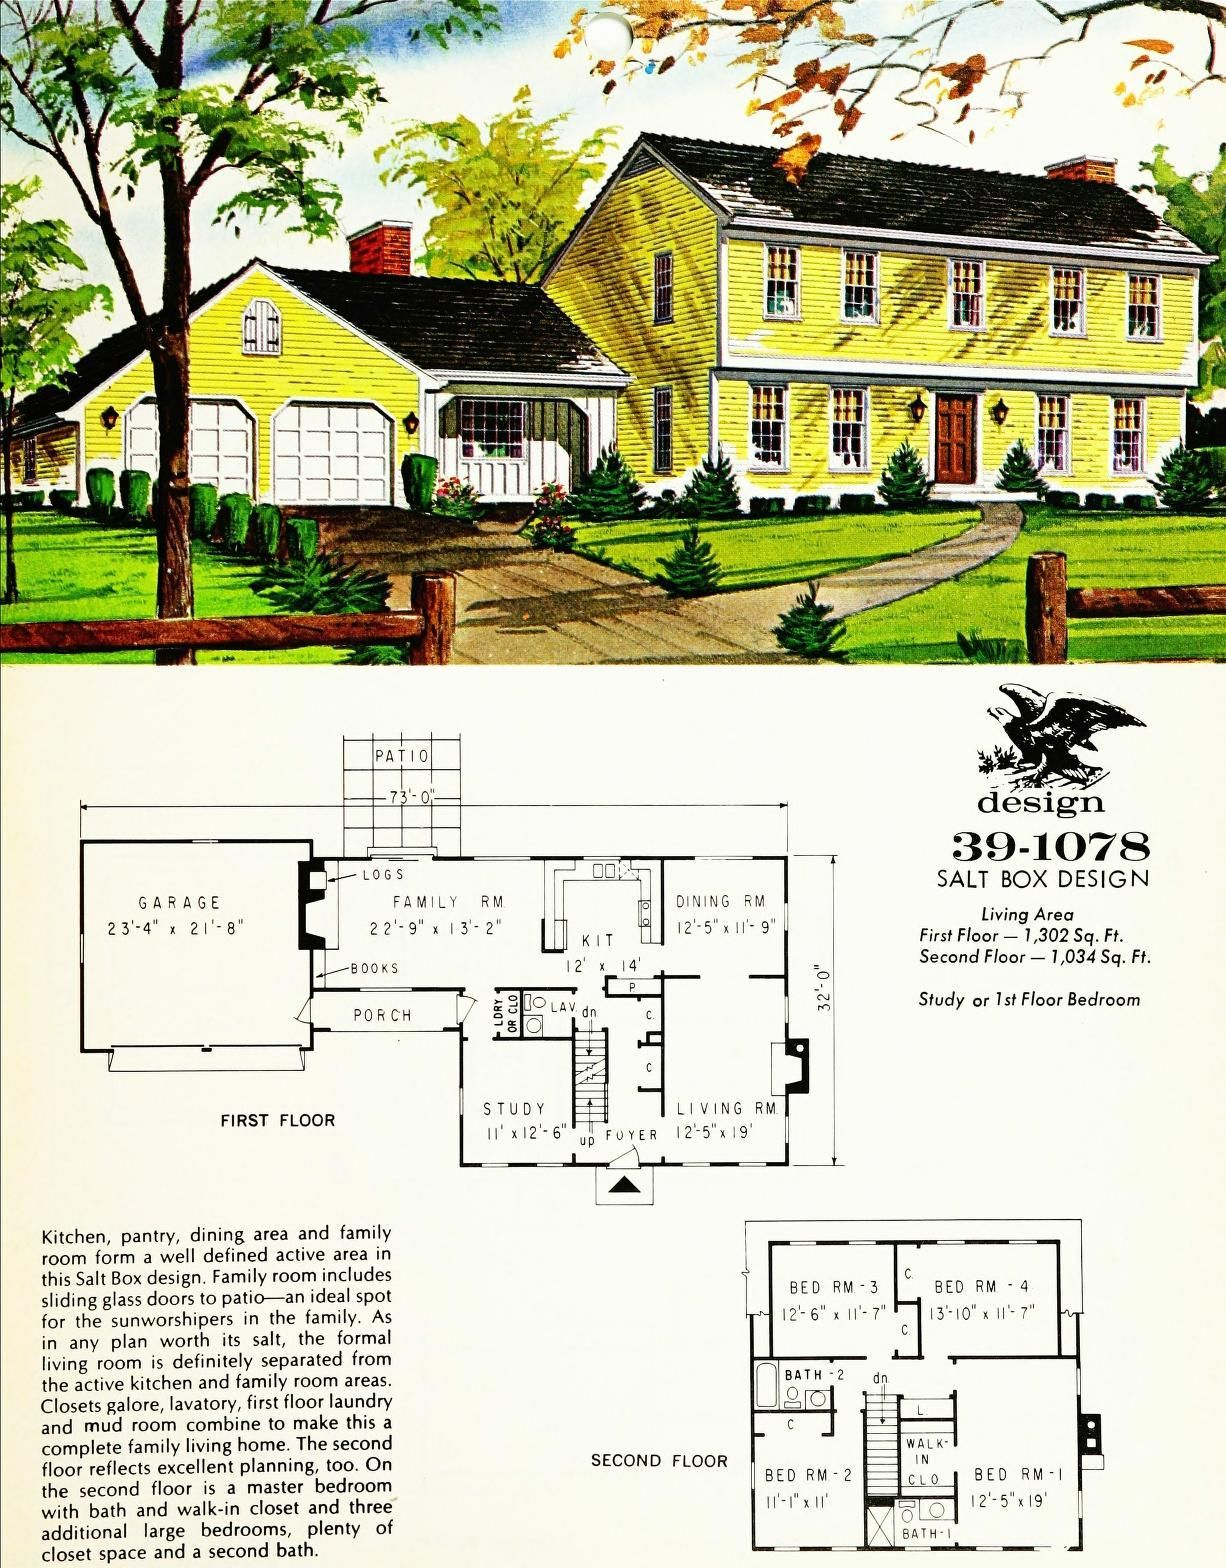 Early American Colonial Home Plans Design No 39 1078 Floor